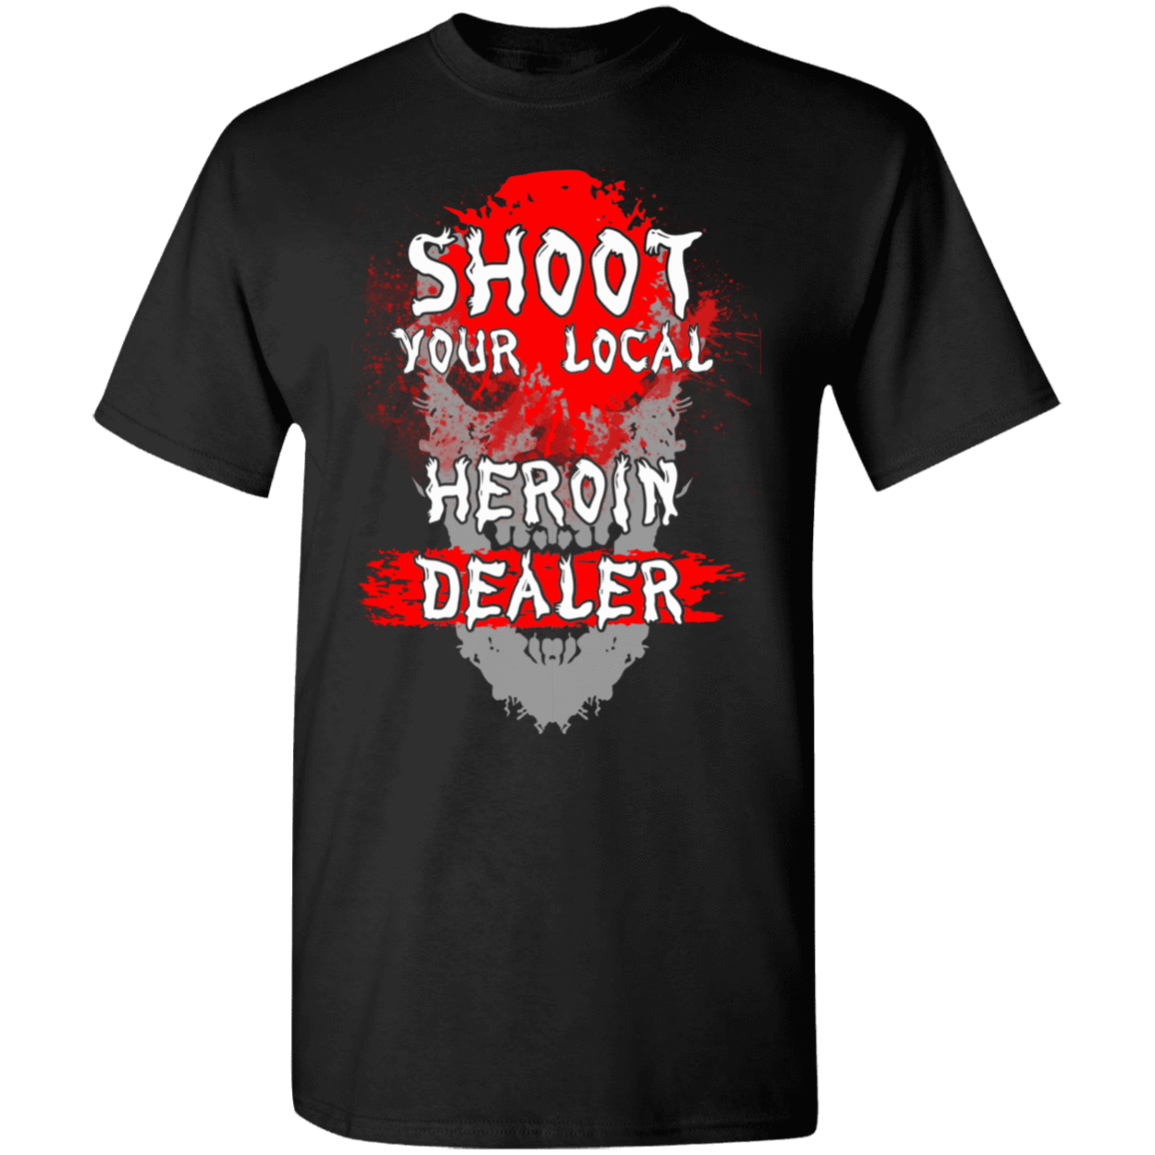 Shoot Your Local Heroin Dealer T-Shirts, Hoodies, Tank 1049-9953-80245838-48144 - Tee Ript